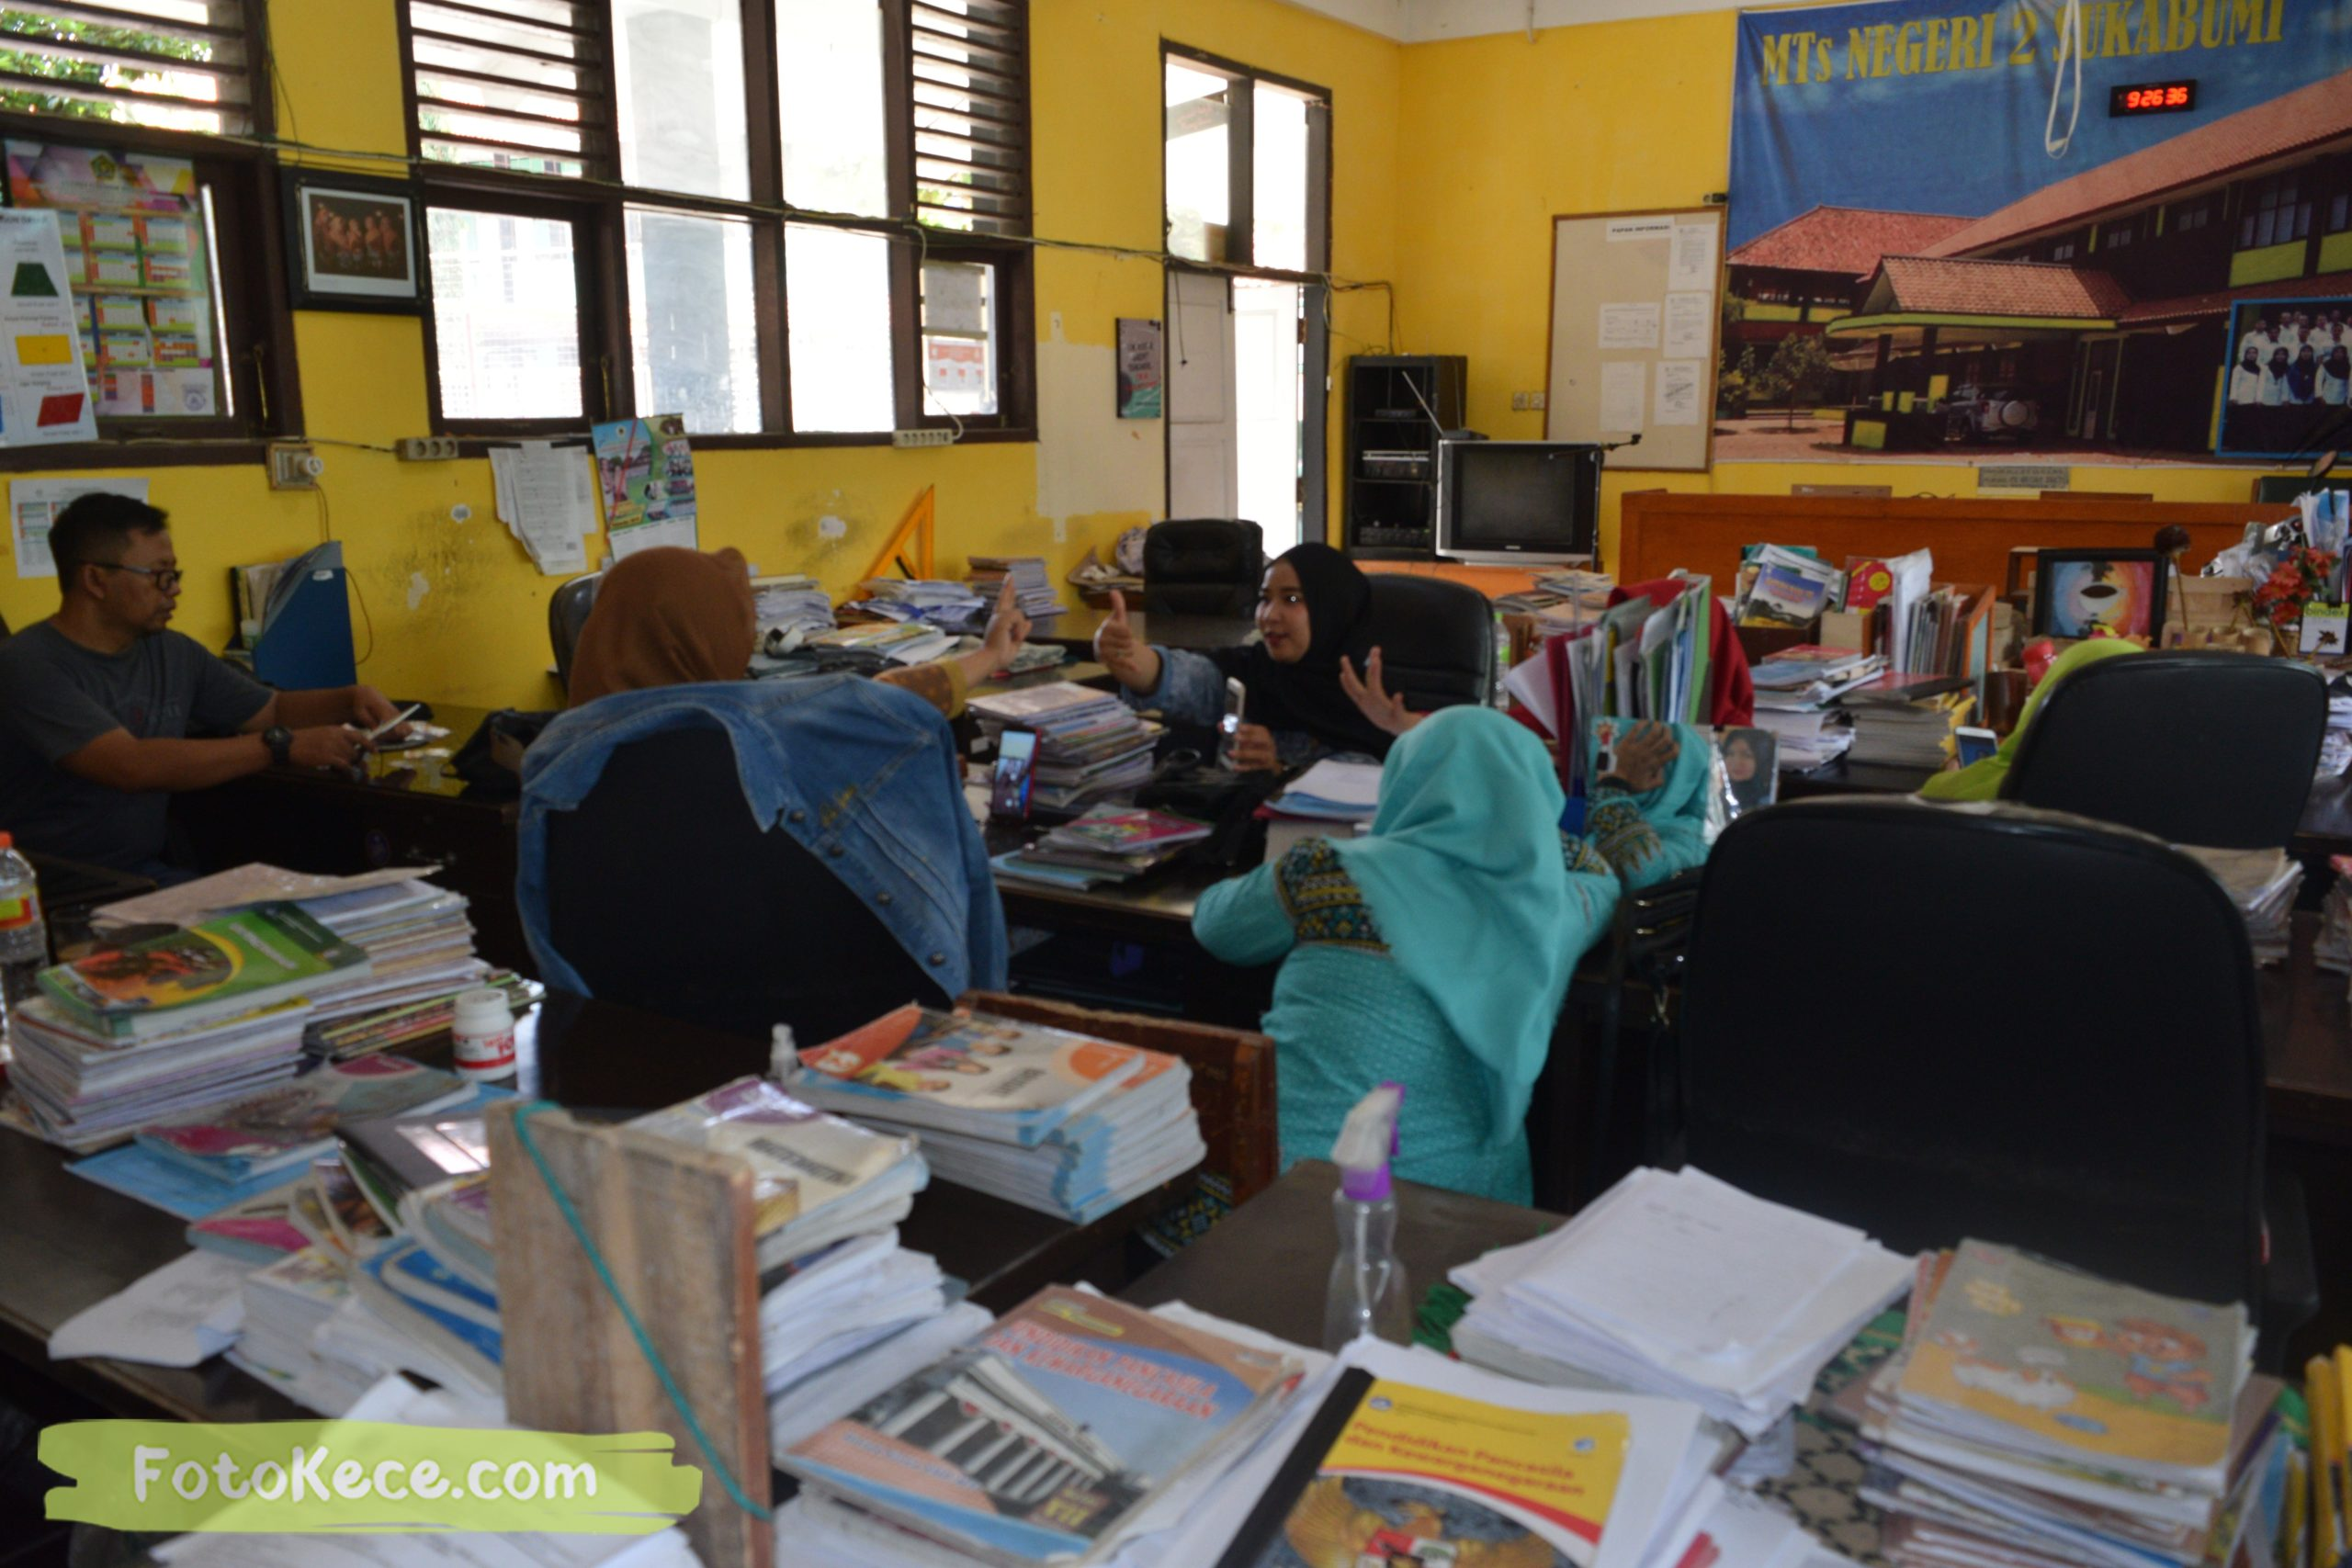 sesaat technikal meeting milad ke 52 08022020 foto kece fotokece 7 scaled